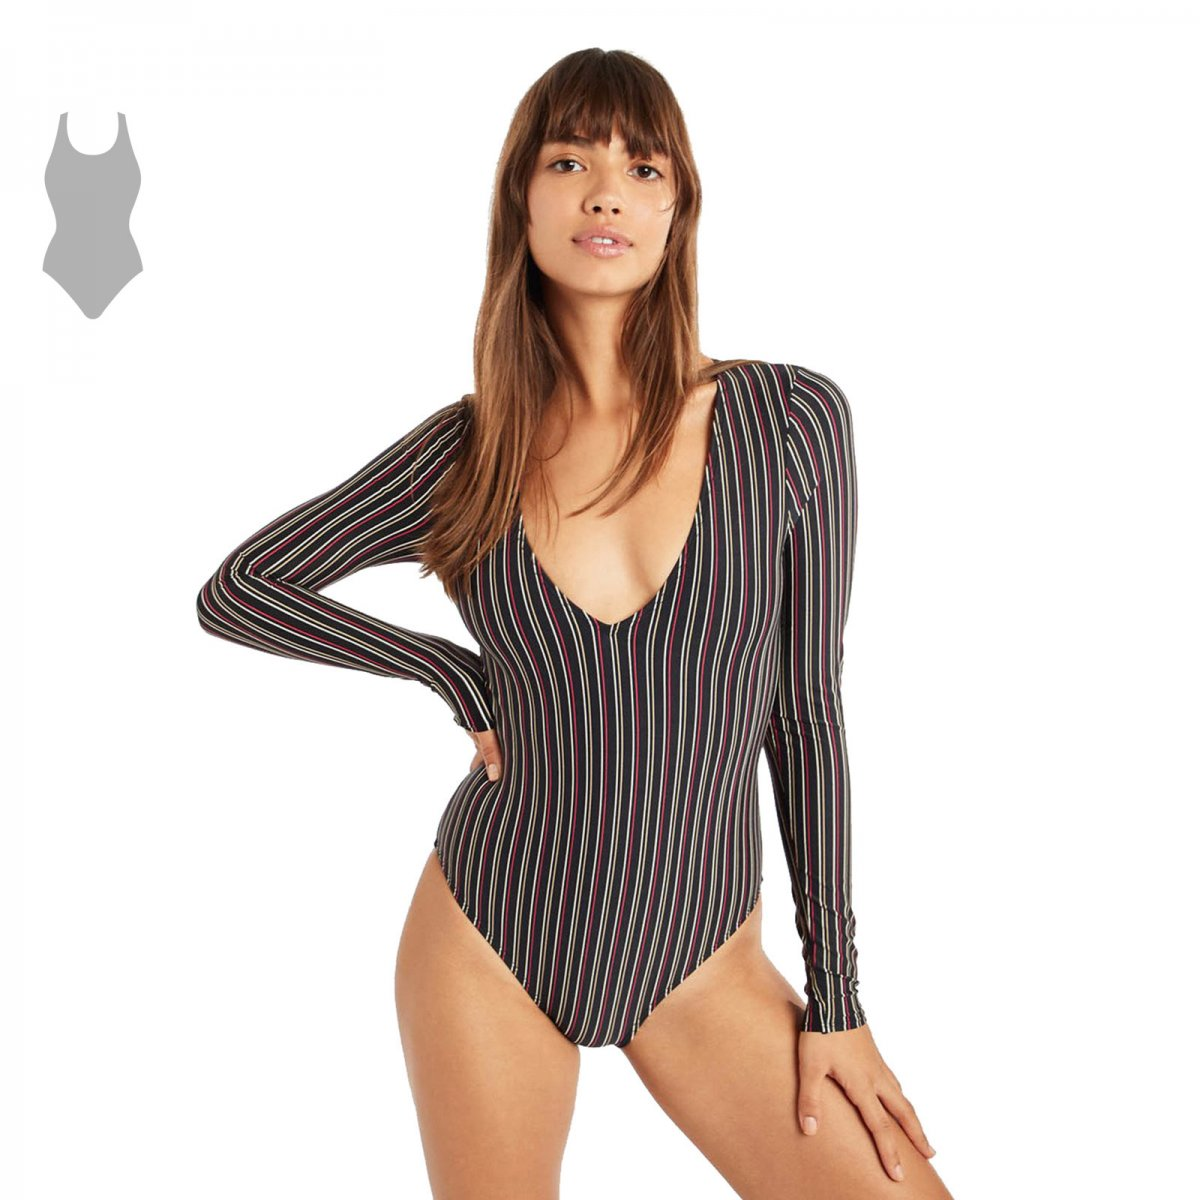 MELLOW LUV BODYSUIT